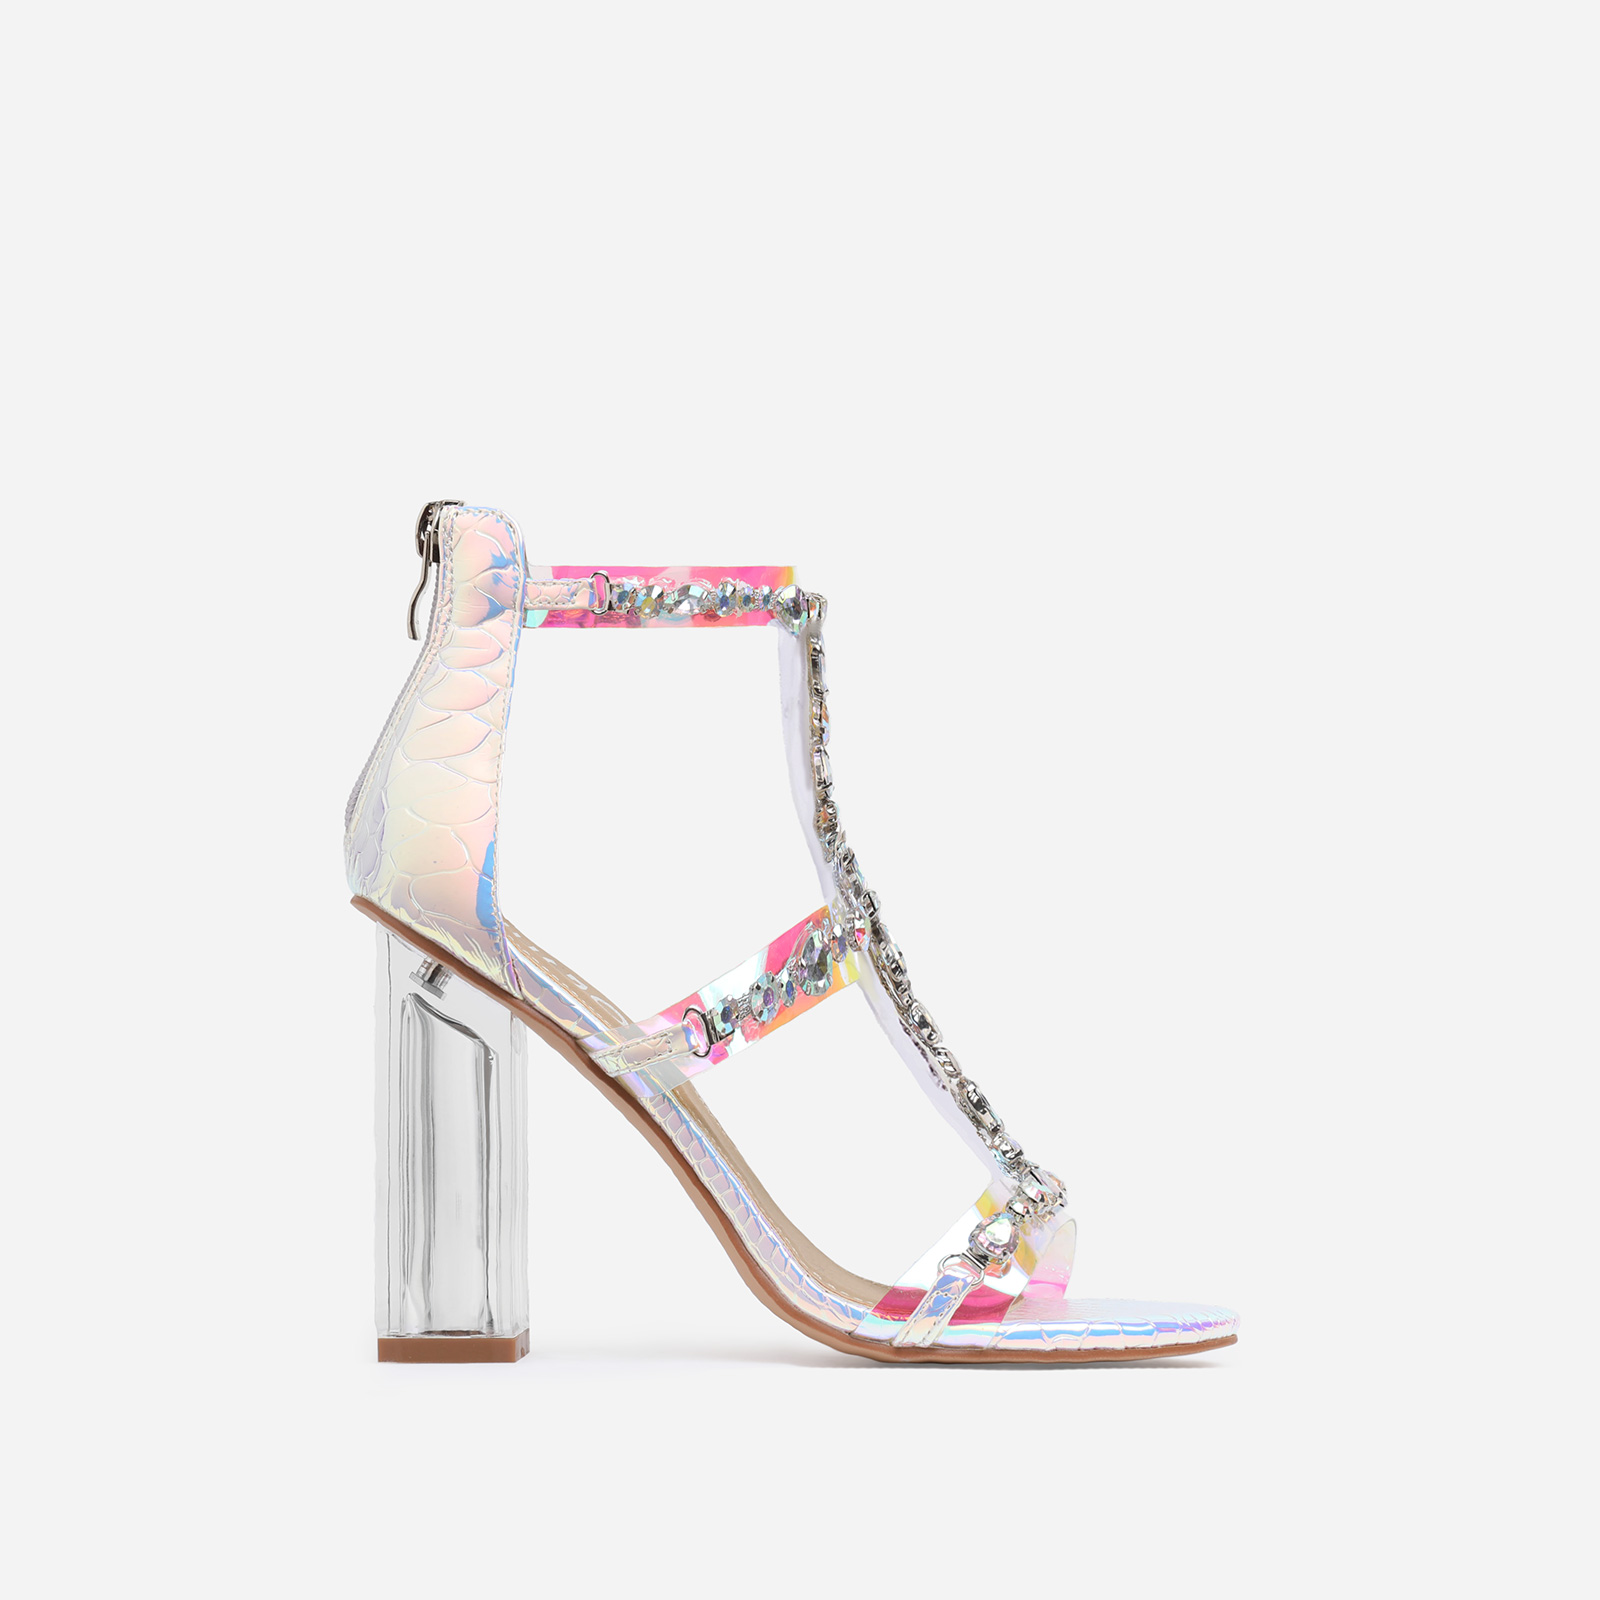 Merryme Jewel Embellished Perspex Block Heel In Silver Holographic Snake Print Faux Leather